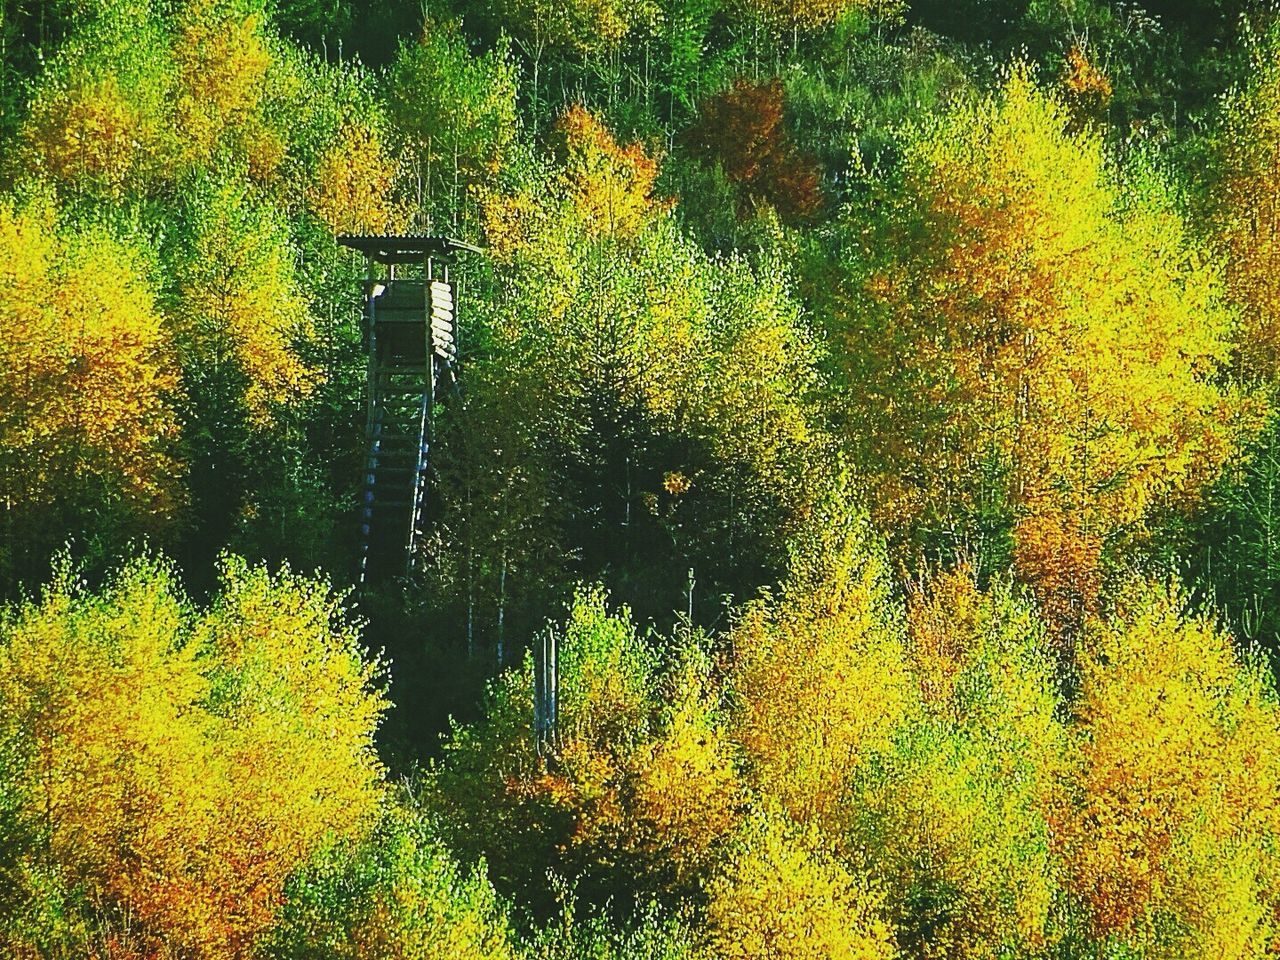 tree, autumn, leaf, nature, change, beauty in nature, yellow, forest, growth, tranquil scene, outdoors, tranquility, scenics, lush foliage, no people, plant, day, green color, lake, water